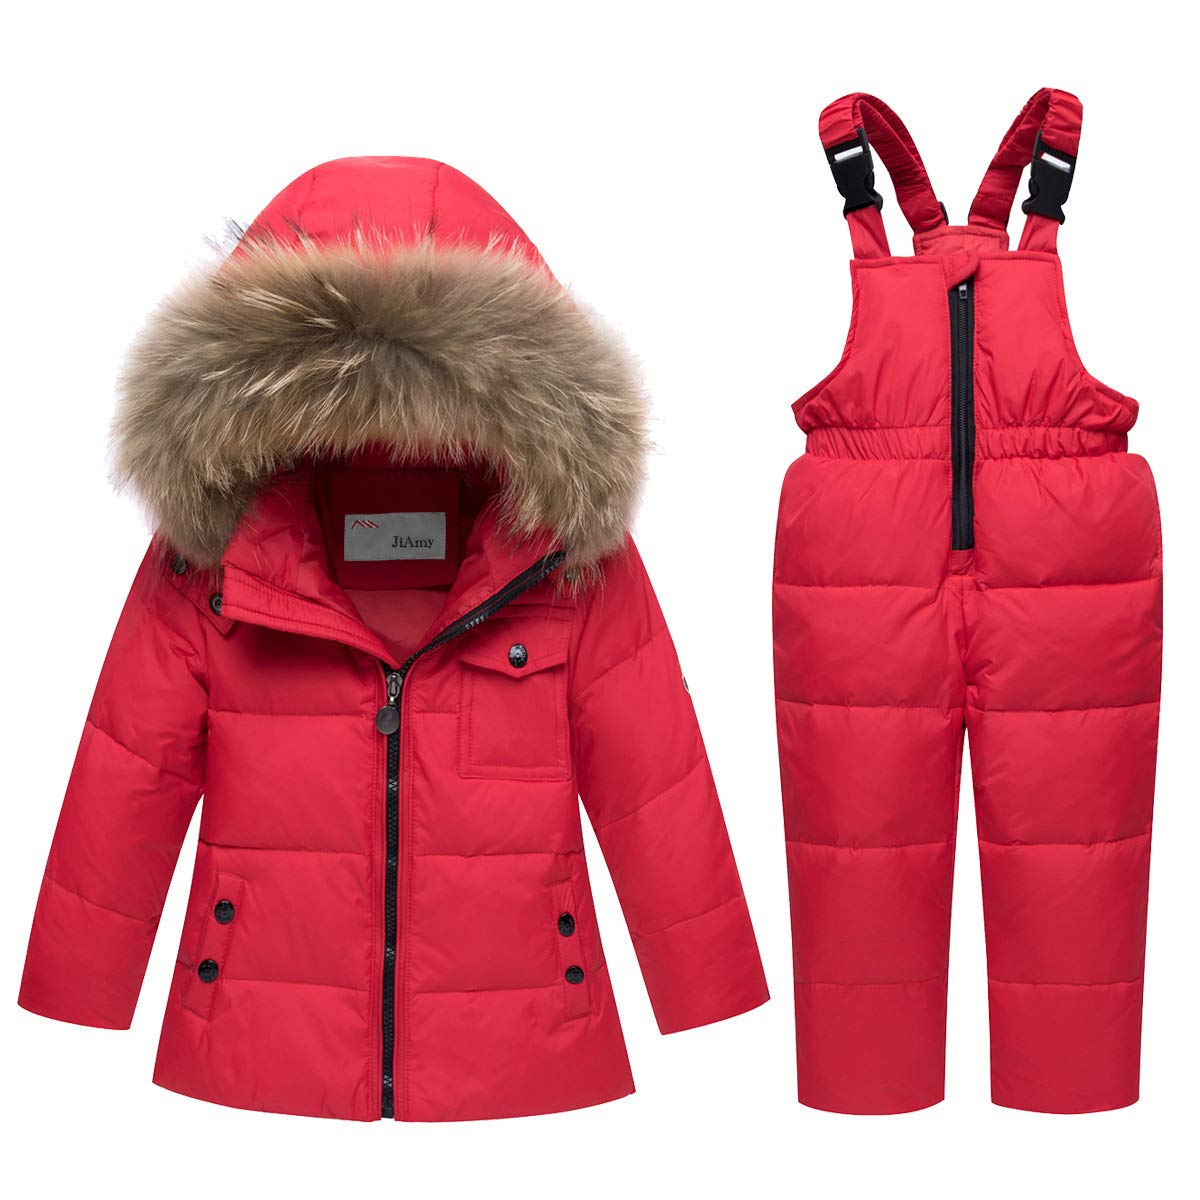 SANMIO Unisex Baby Winter Jacket Warm Snowsuit Down Jacket Ski Suit Cute Hooded Snow Trousers Down Jacket 2pcs Clothing Set Thickened Red